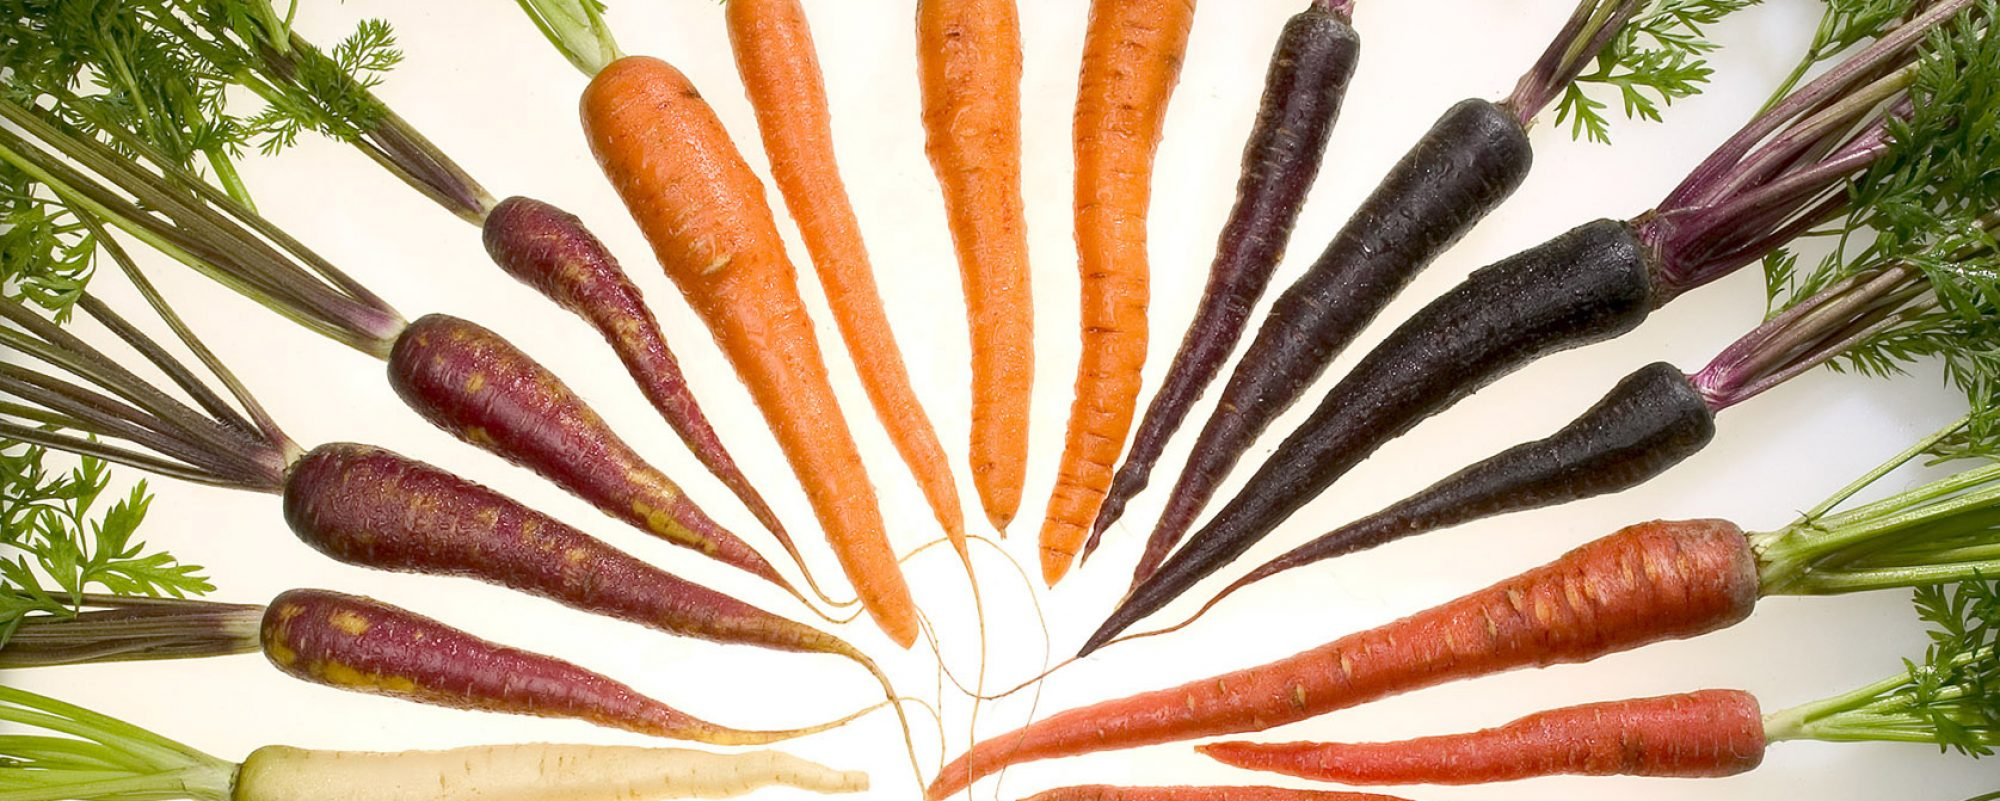 cropped-carrots_of_many_colors.jpg